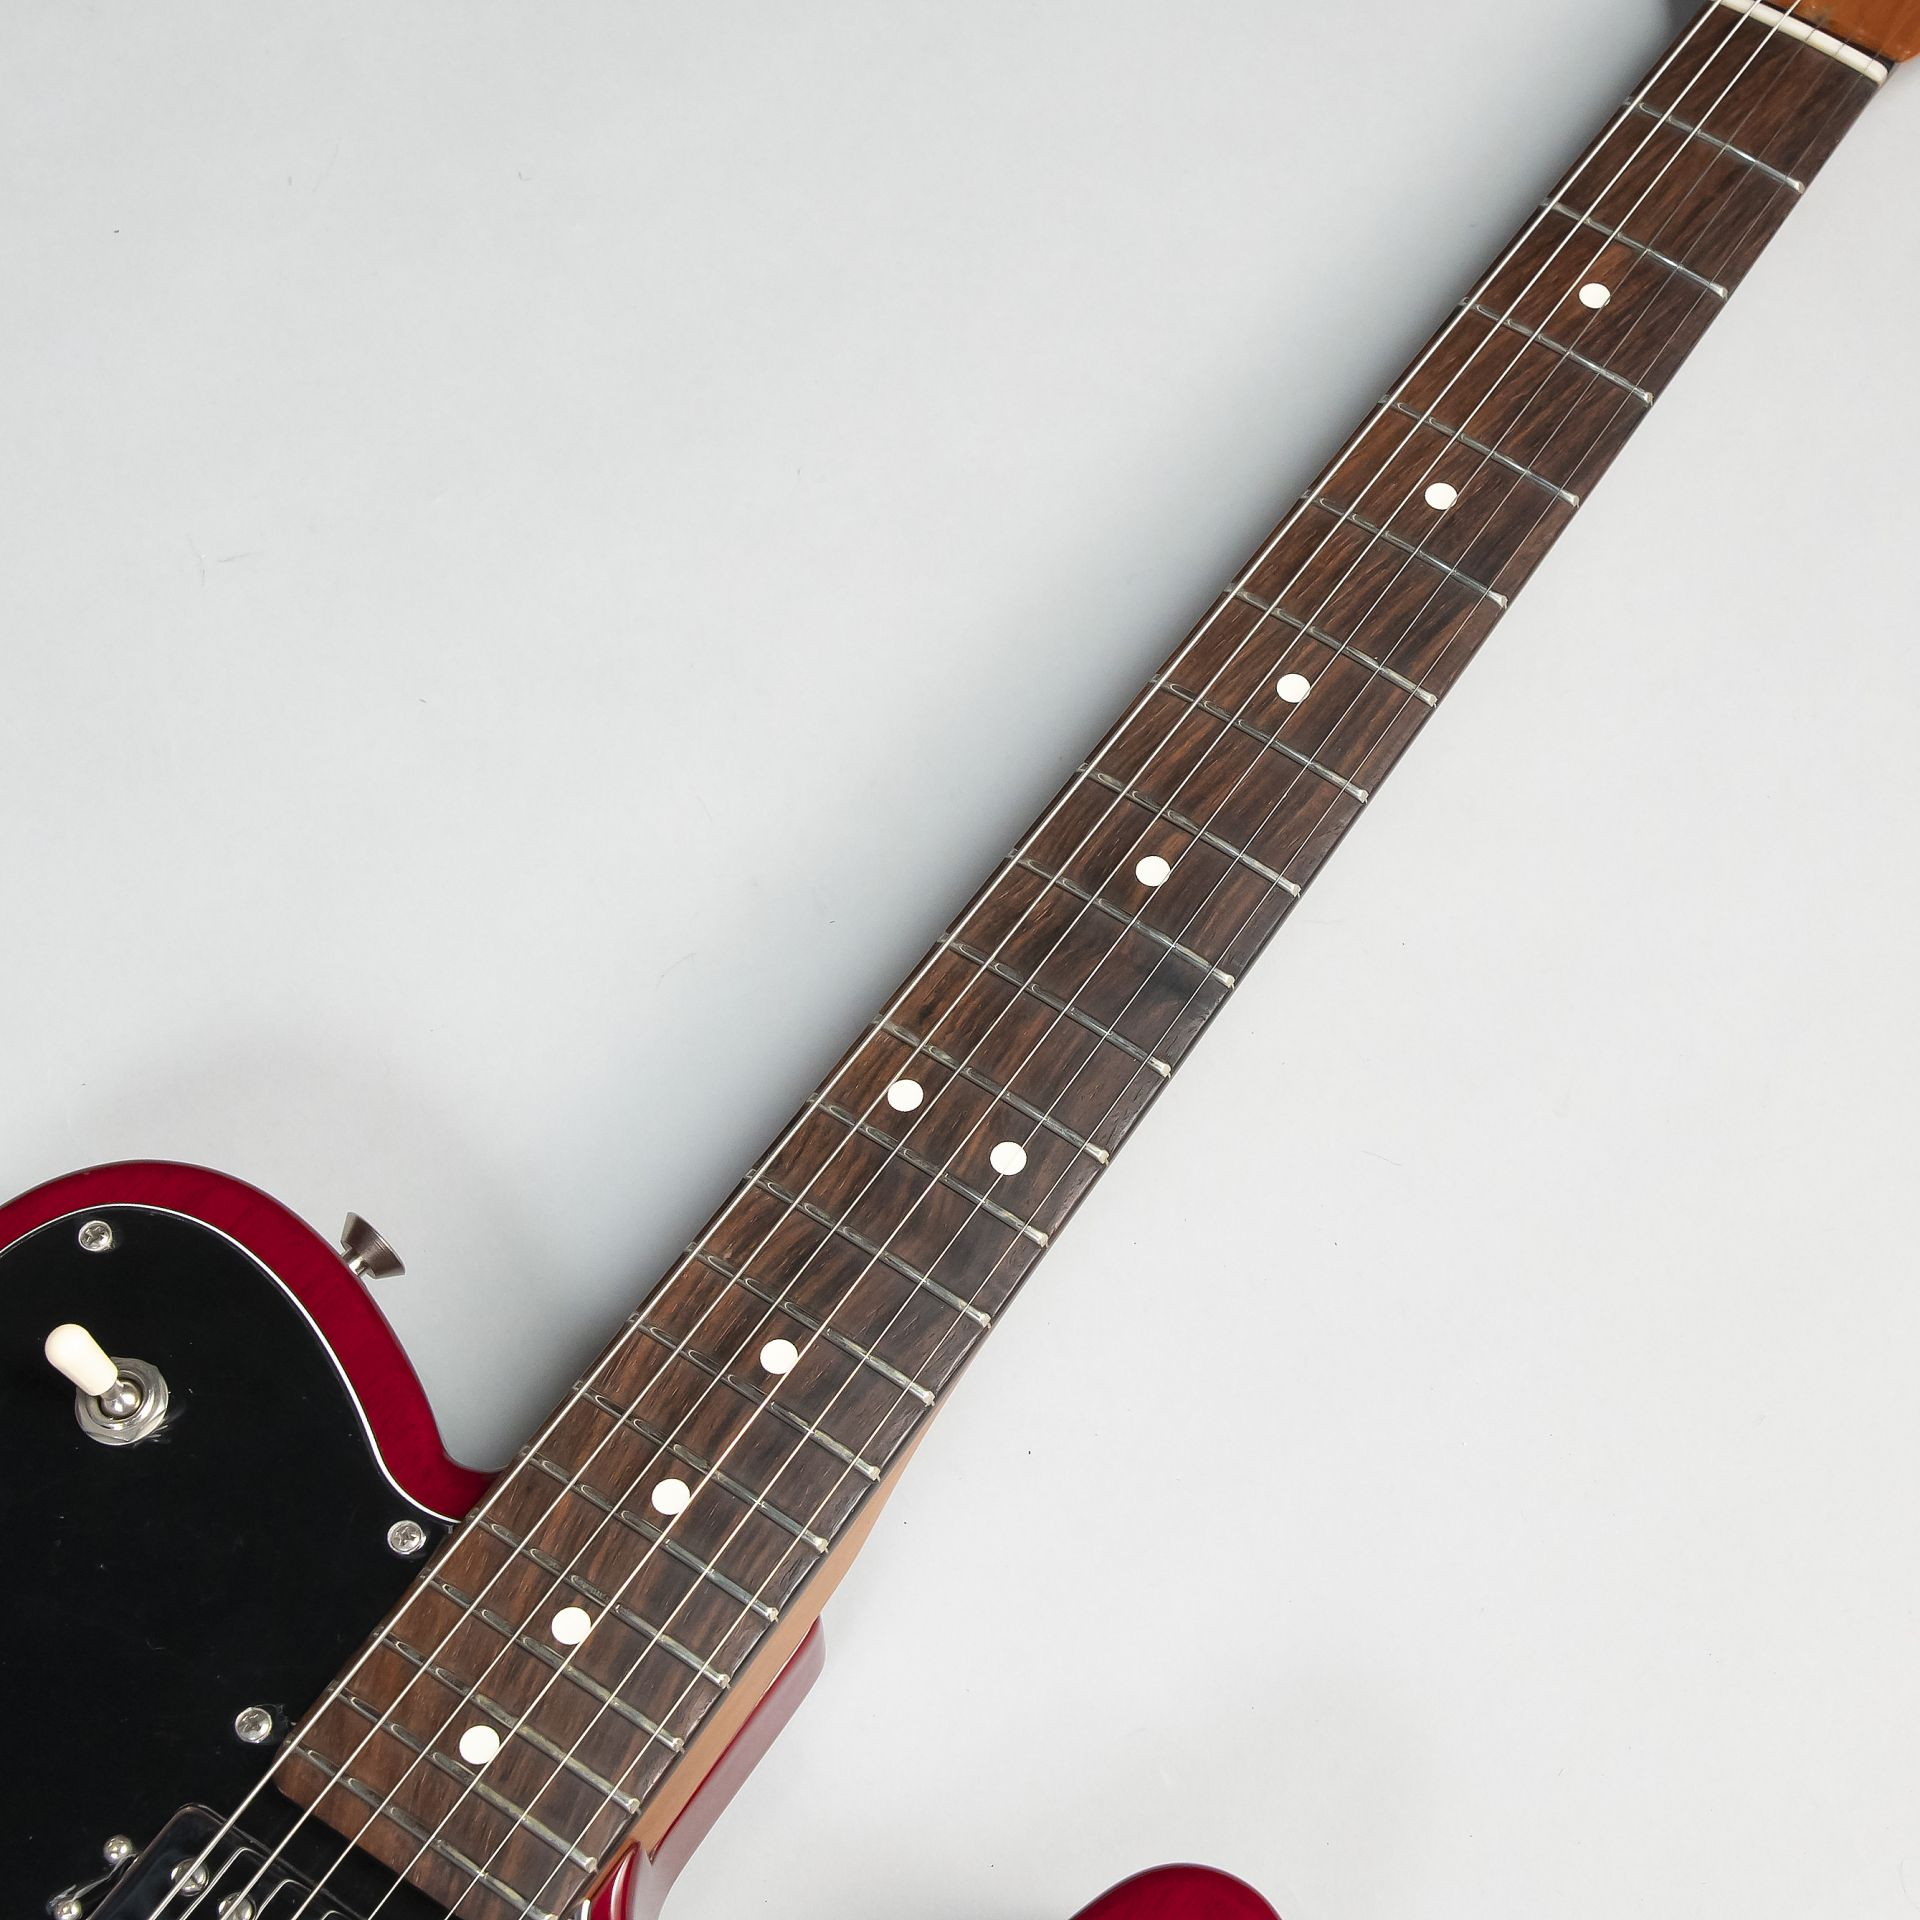 2017 LIMITED EDITION AMERICAN PROFESSIONAL MAHOGANY TELE DELUXEの指板画像